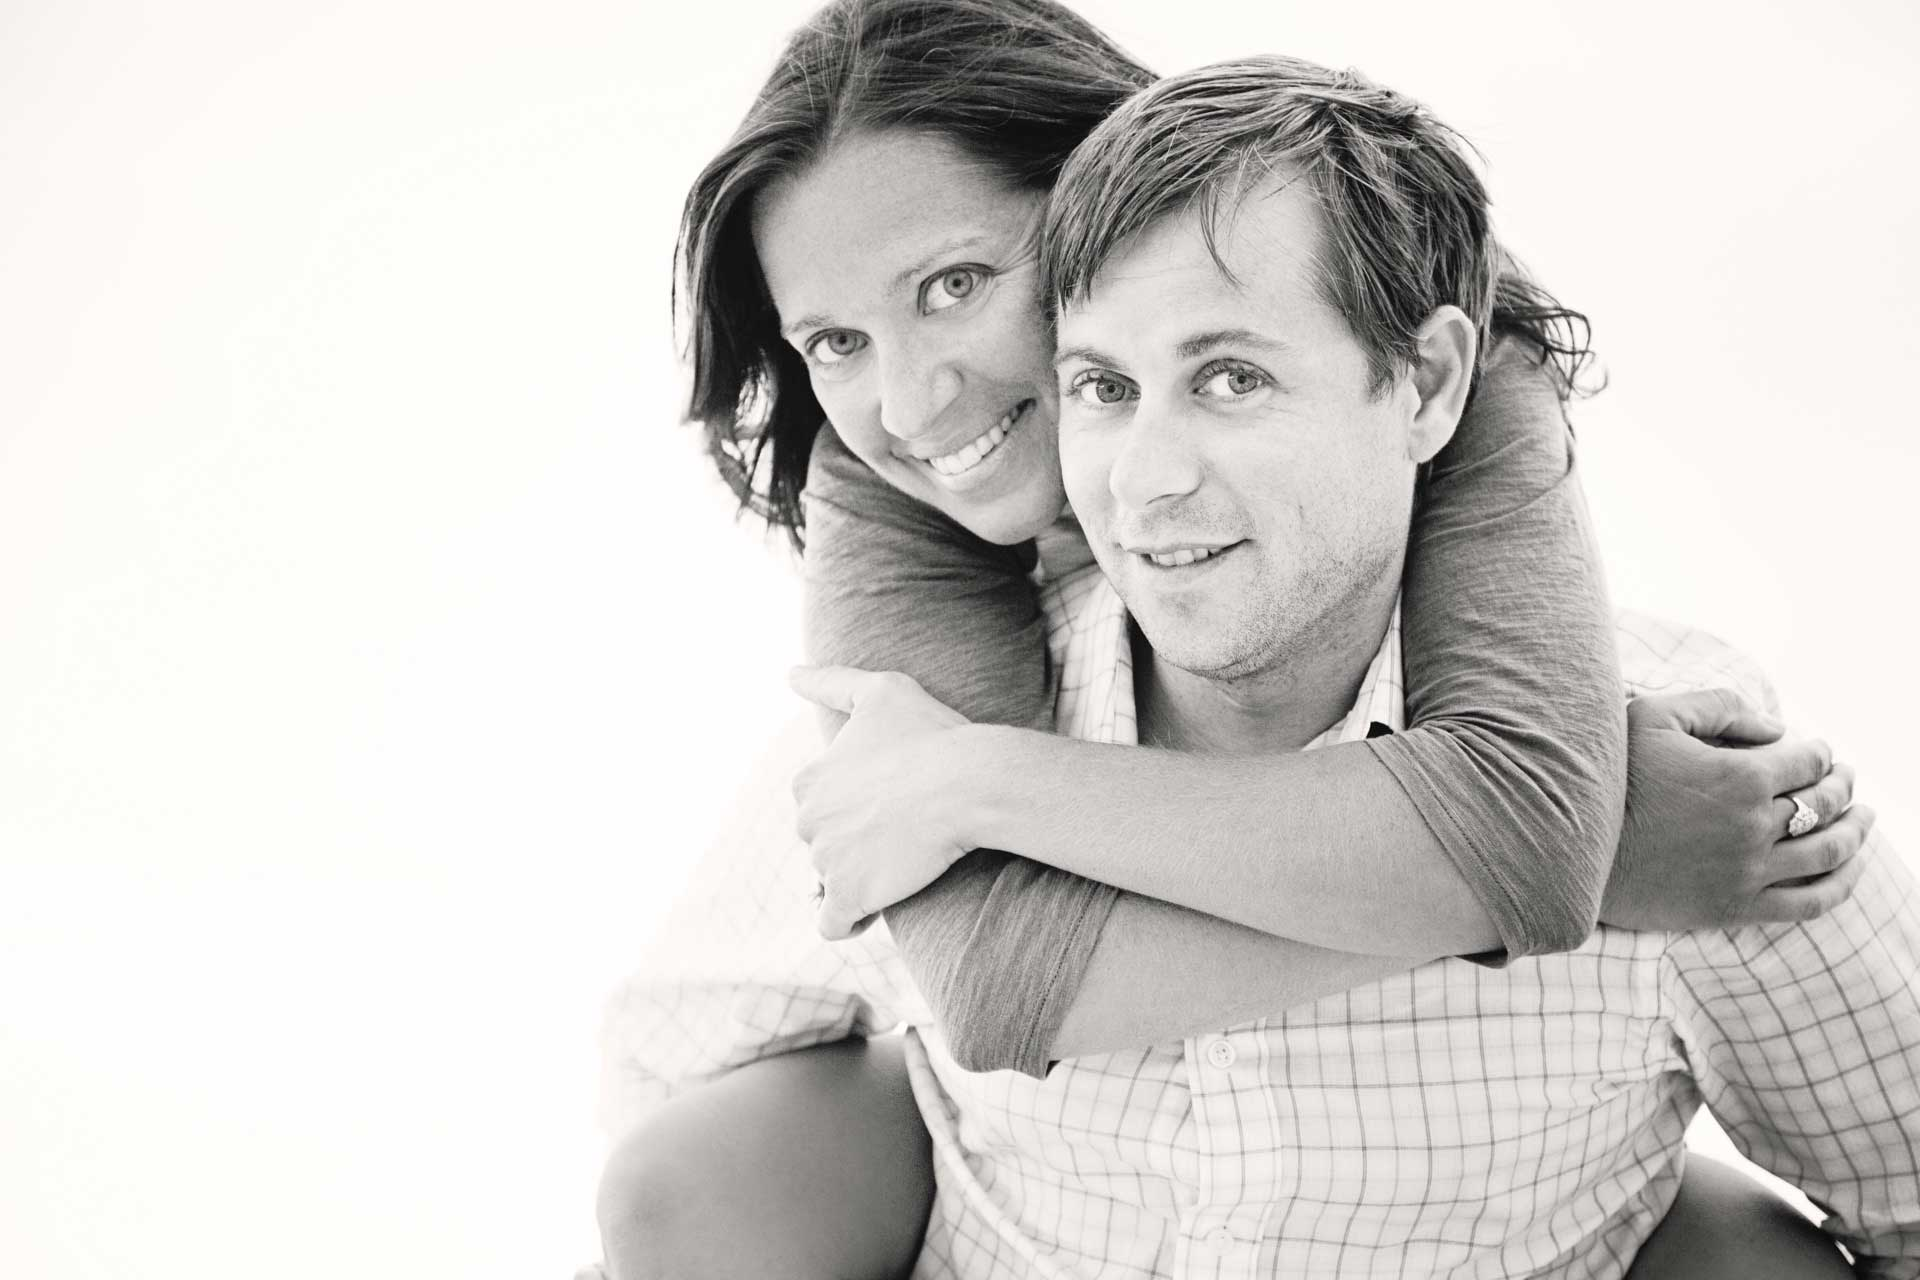 <h3>Jessica</h3>                                 <p>That special session helped me to see how far I have come with that wonderful man on my side.</p>